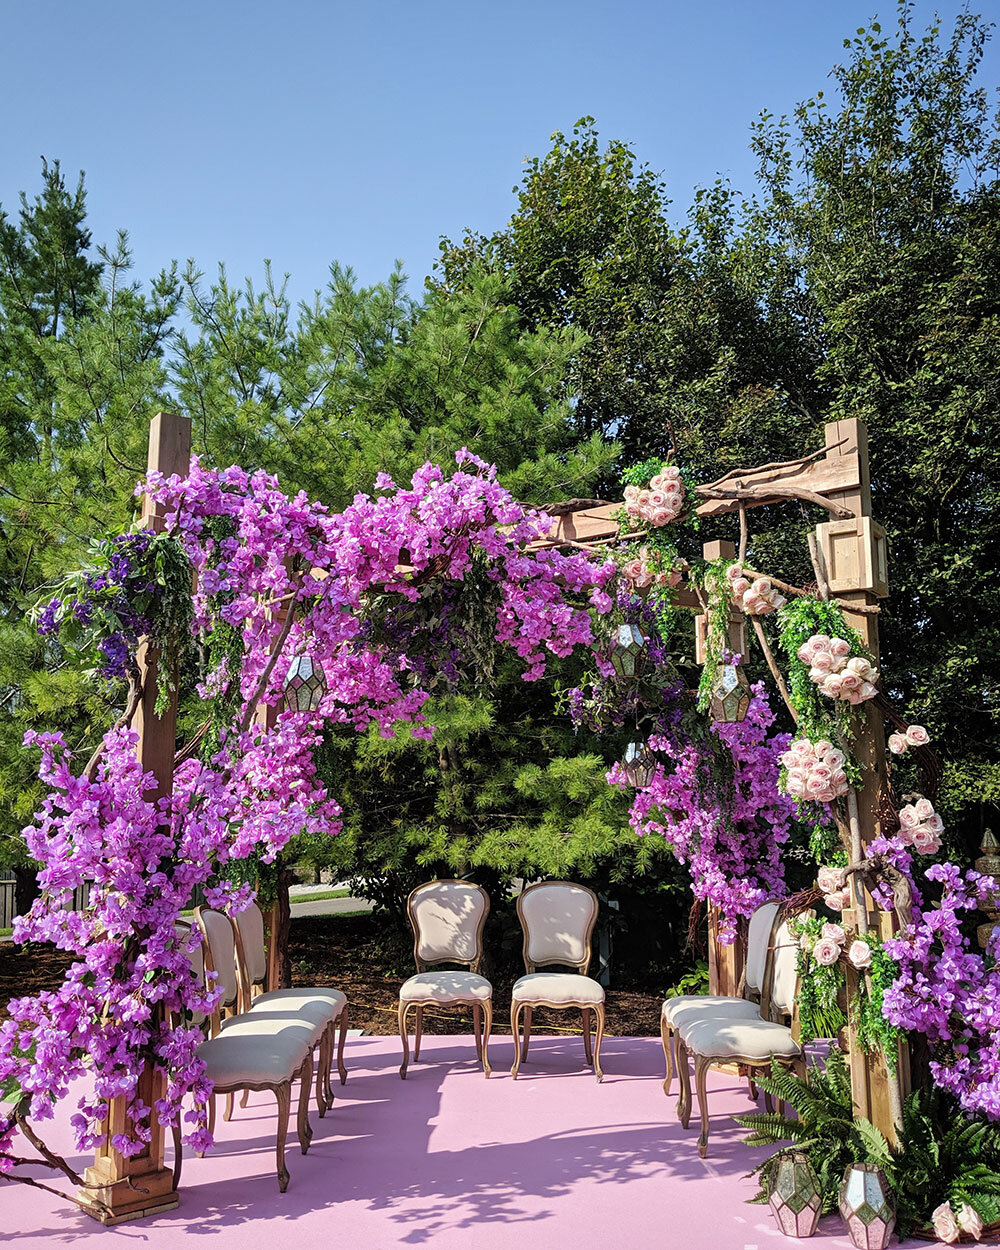 Paras-Events-Rustic-Garden-Bouganvillea-Wedding-Mandap-Rattlesnake-Point-Golf-Club-1.jpg